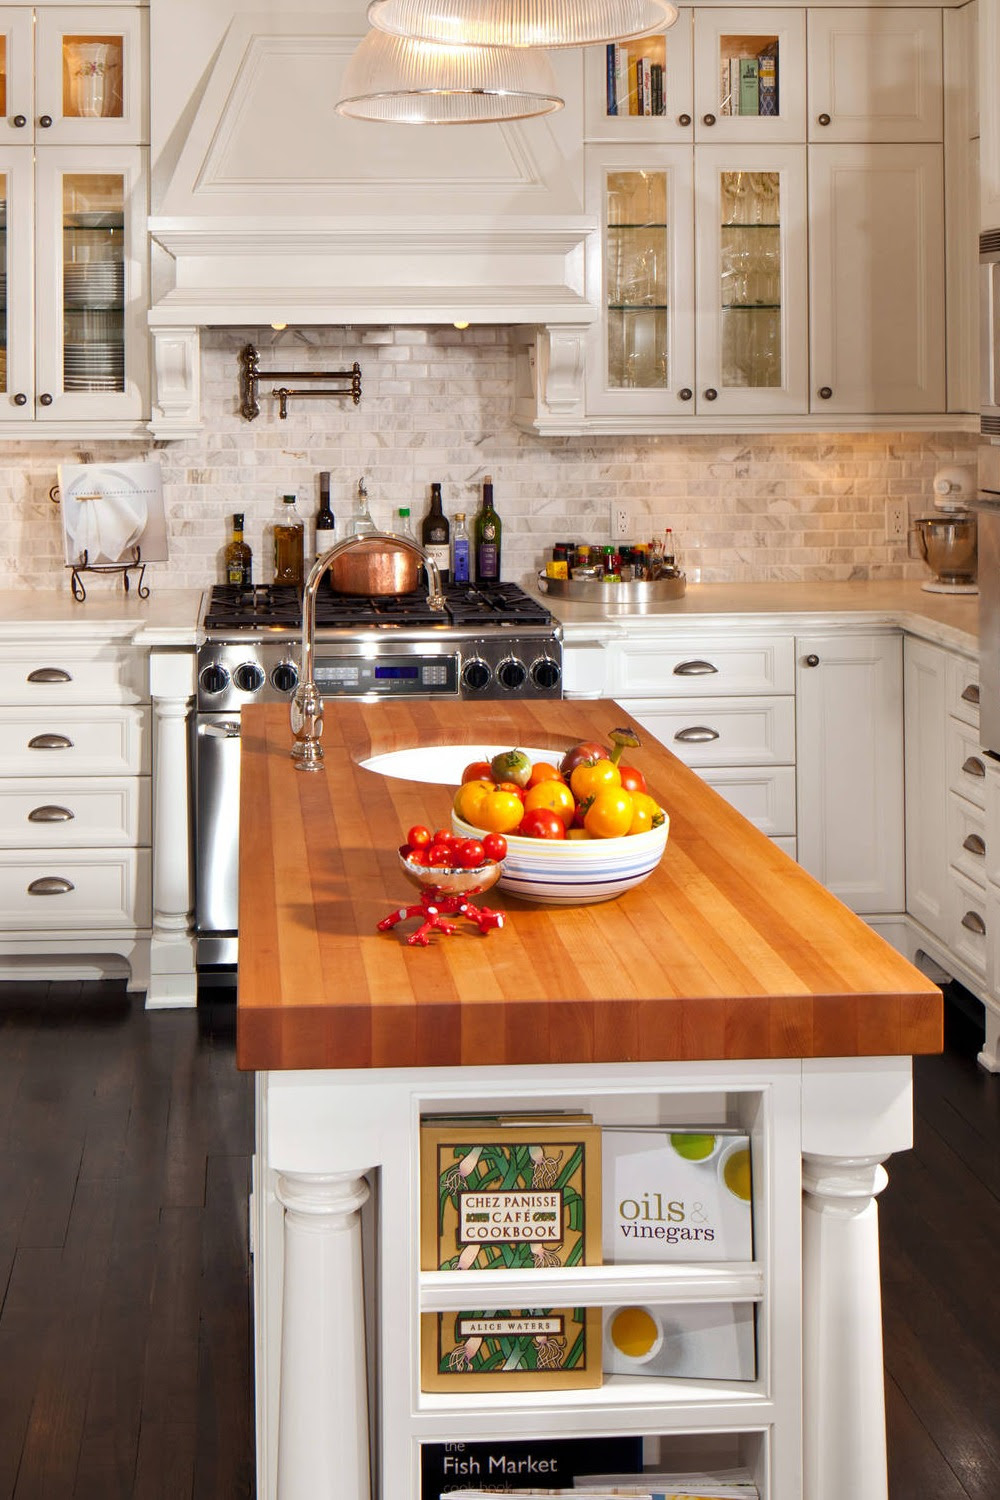 48 Backsplash Ideas for White Countertops and White Cabinets